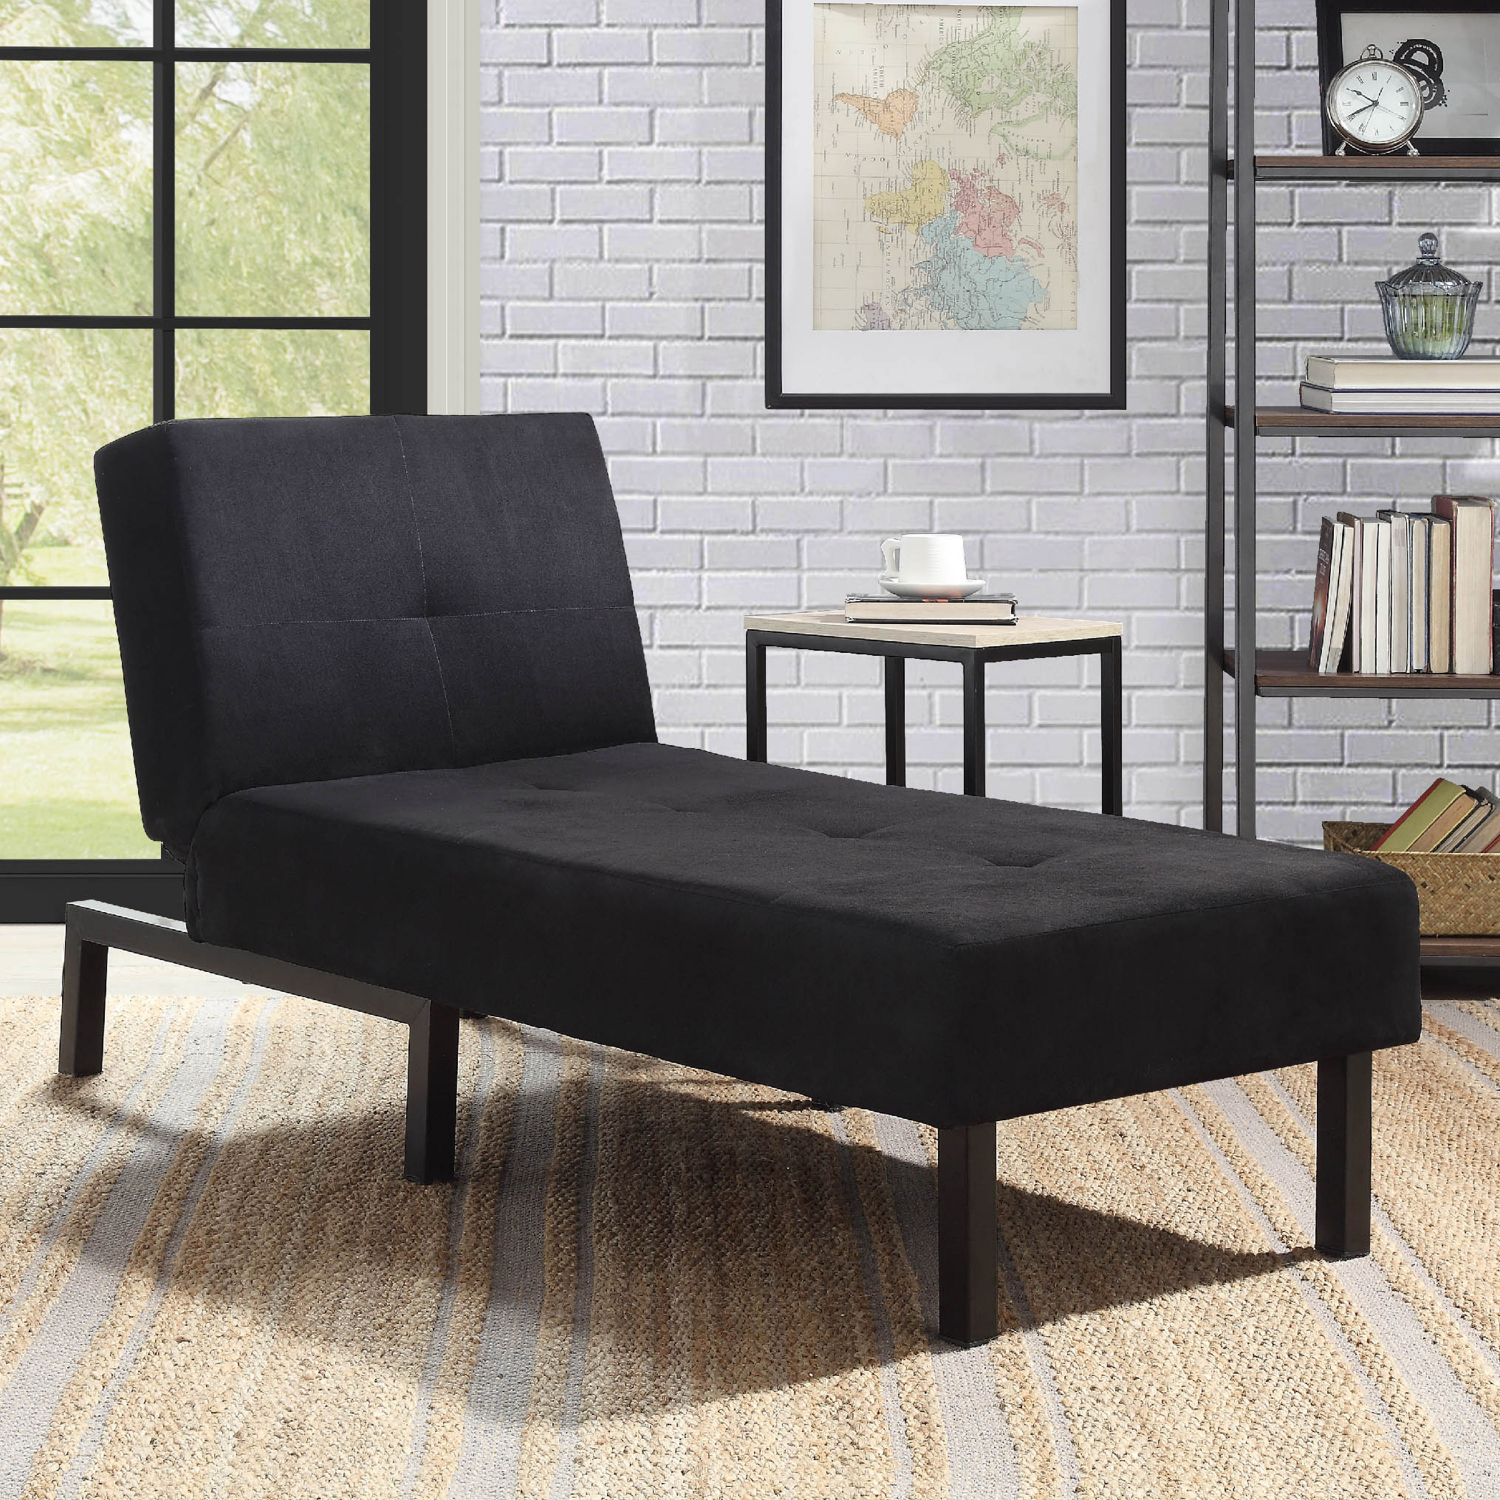 Comfy Accent Chair Living Room Convertible Chaise Lounge